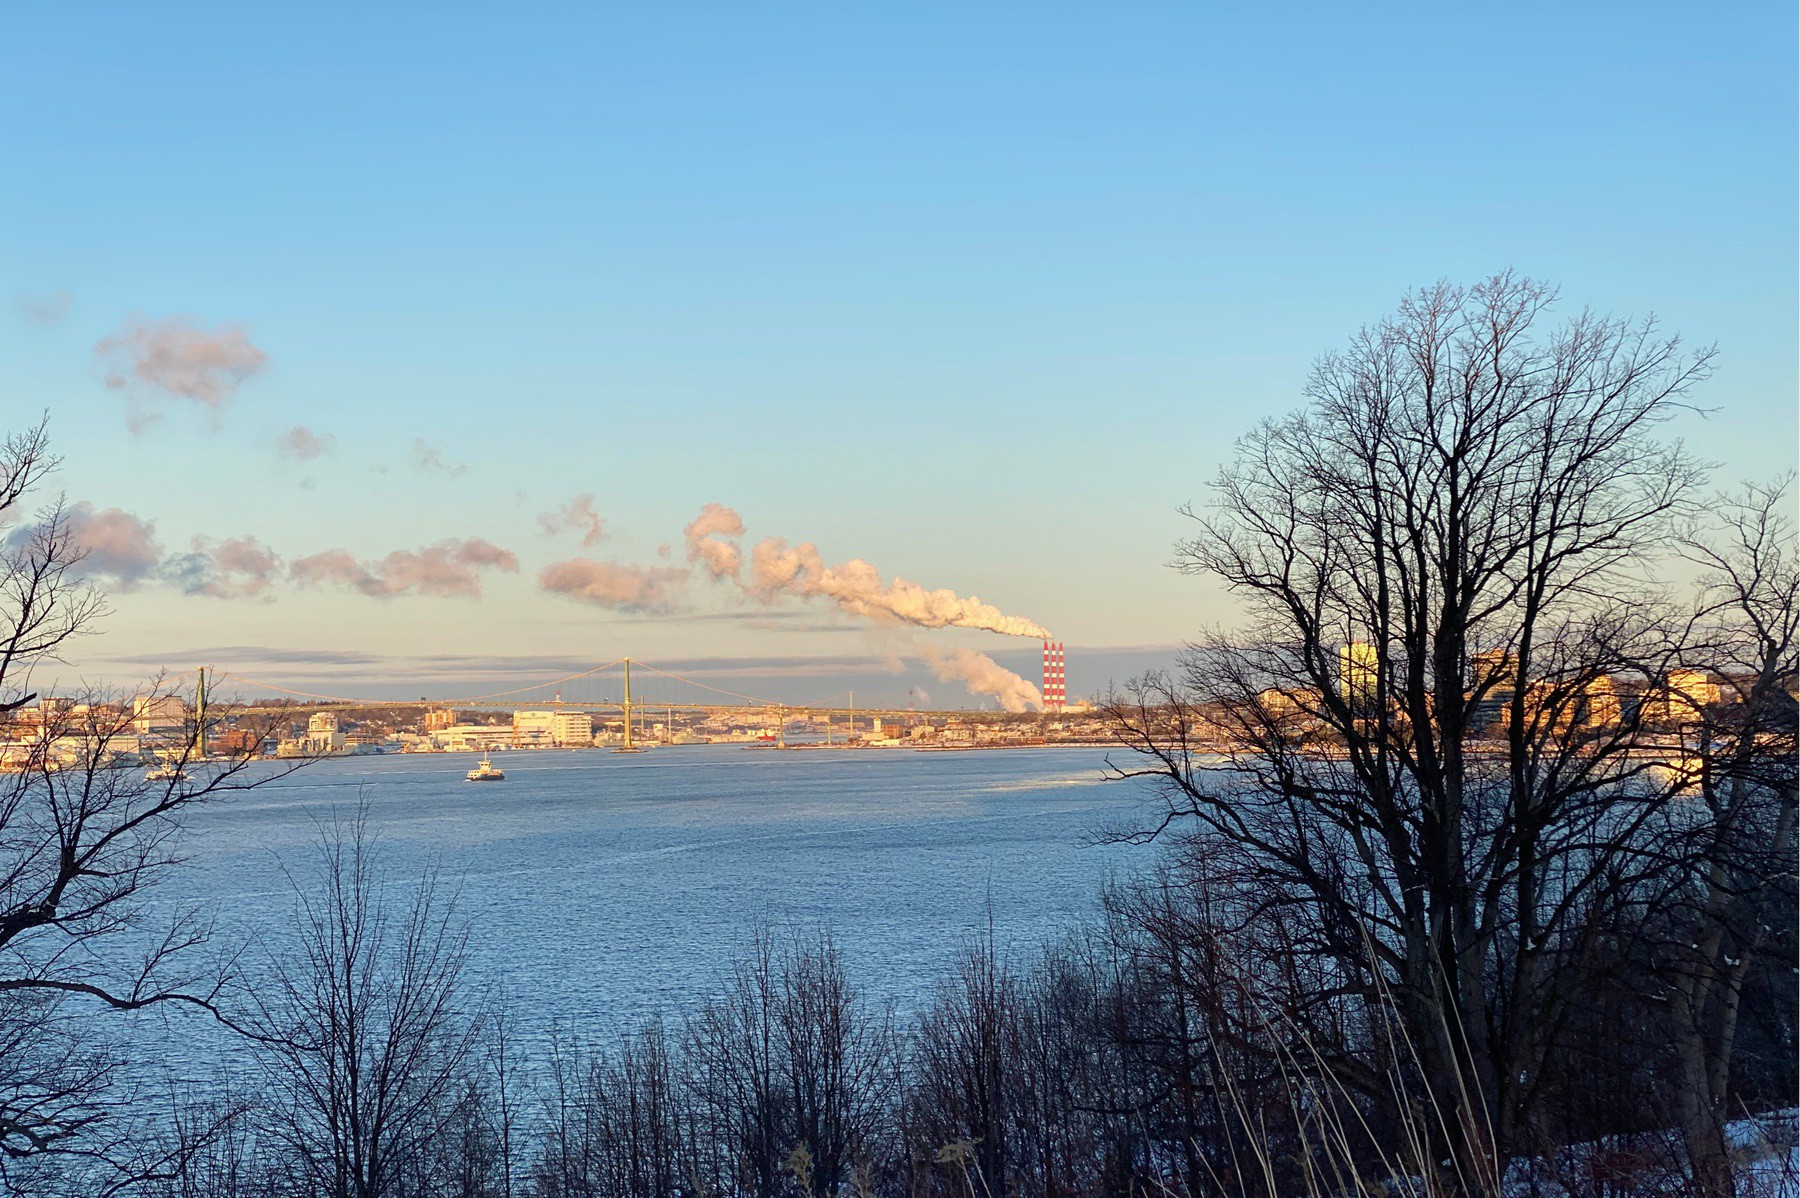 View of Halifax Harbour with trees and morning sky.